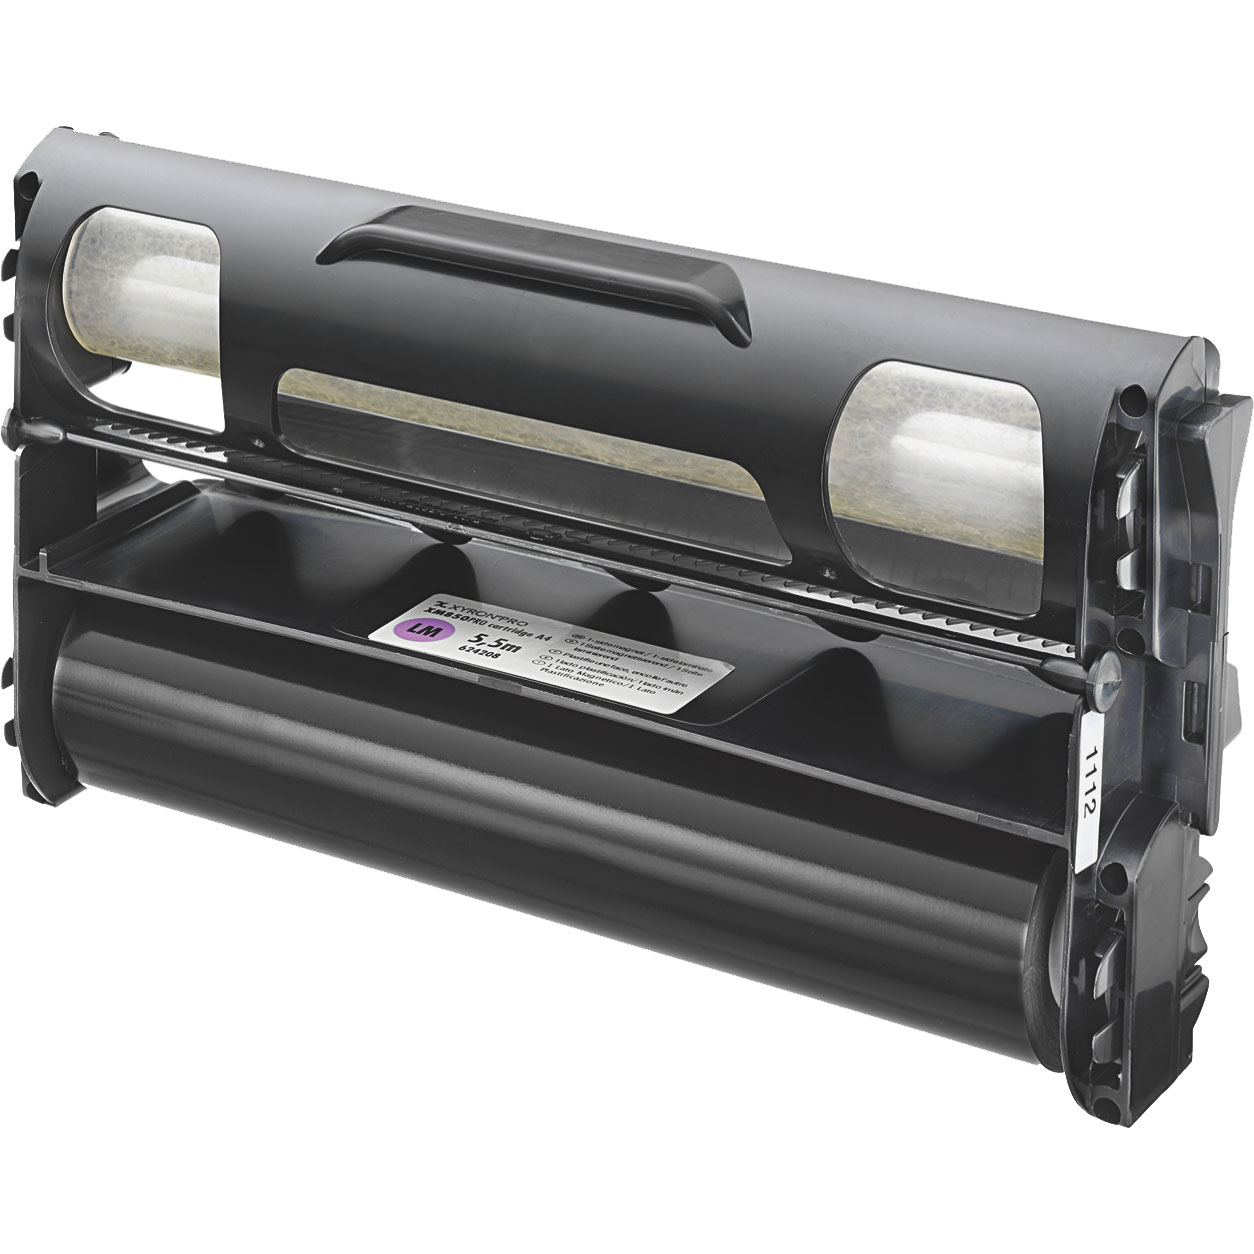 Xyron Pro 850 Lamination & Magnetic Refill Cartridge